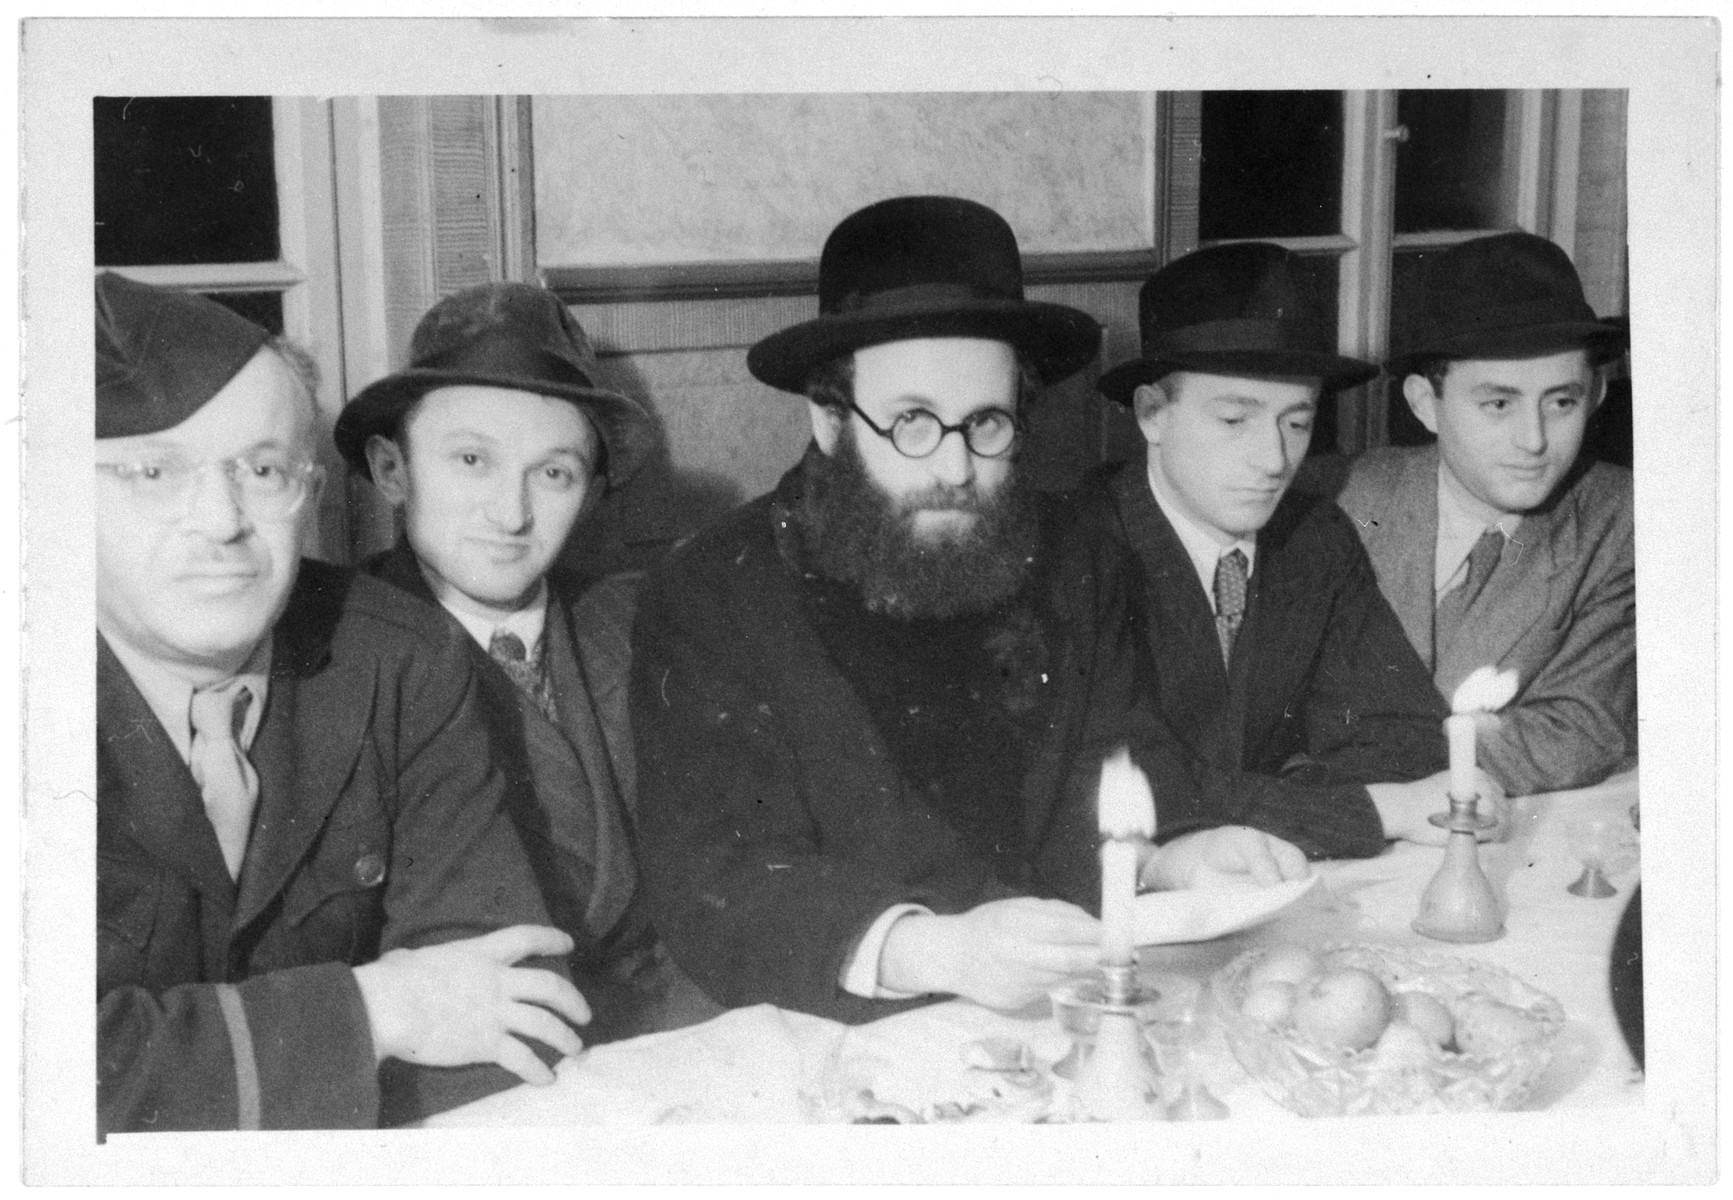 Religious Jews gather for either a Shabbat or a holiday meal in the Zeilsheim displaced persons' camp.